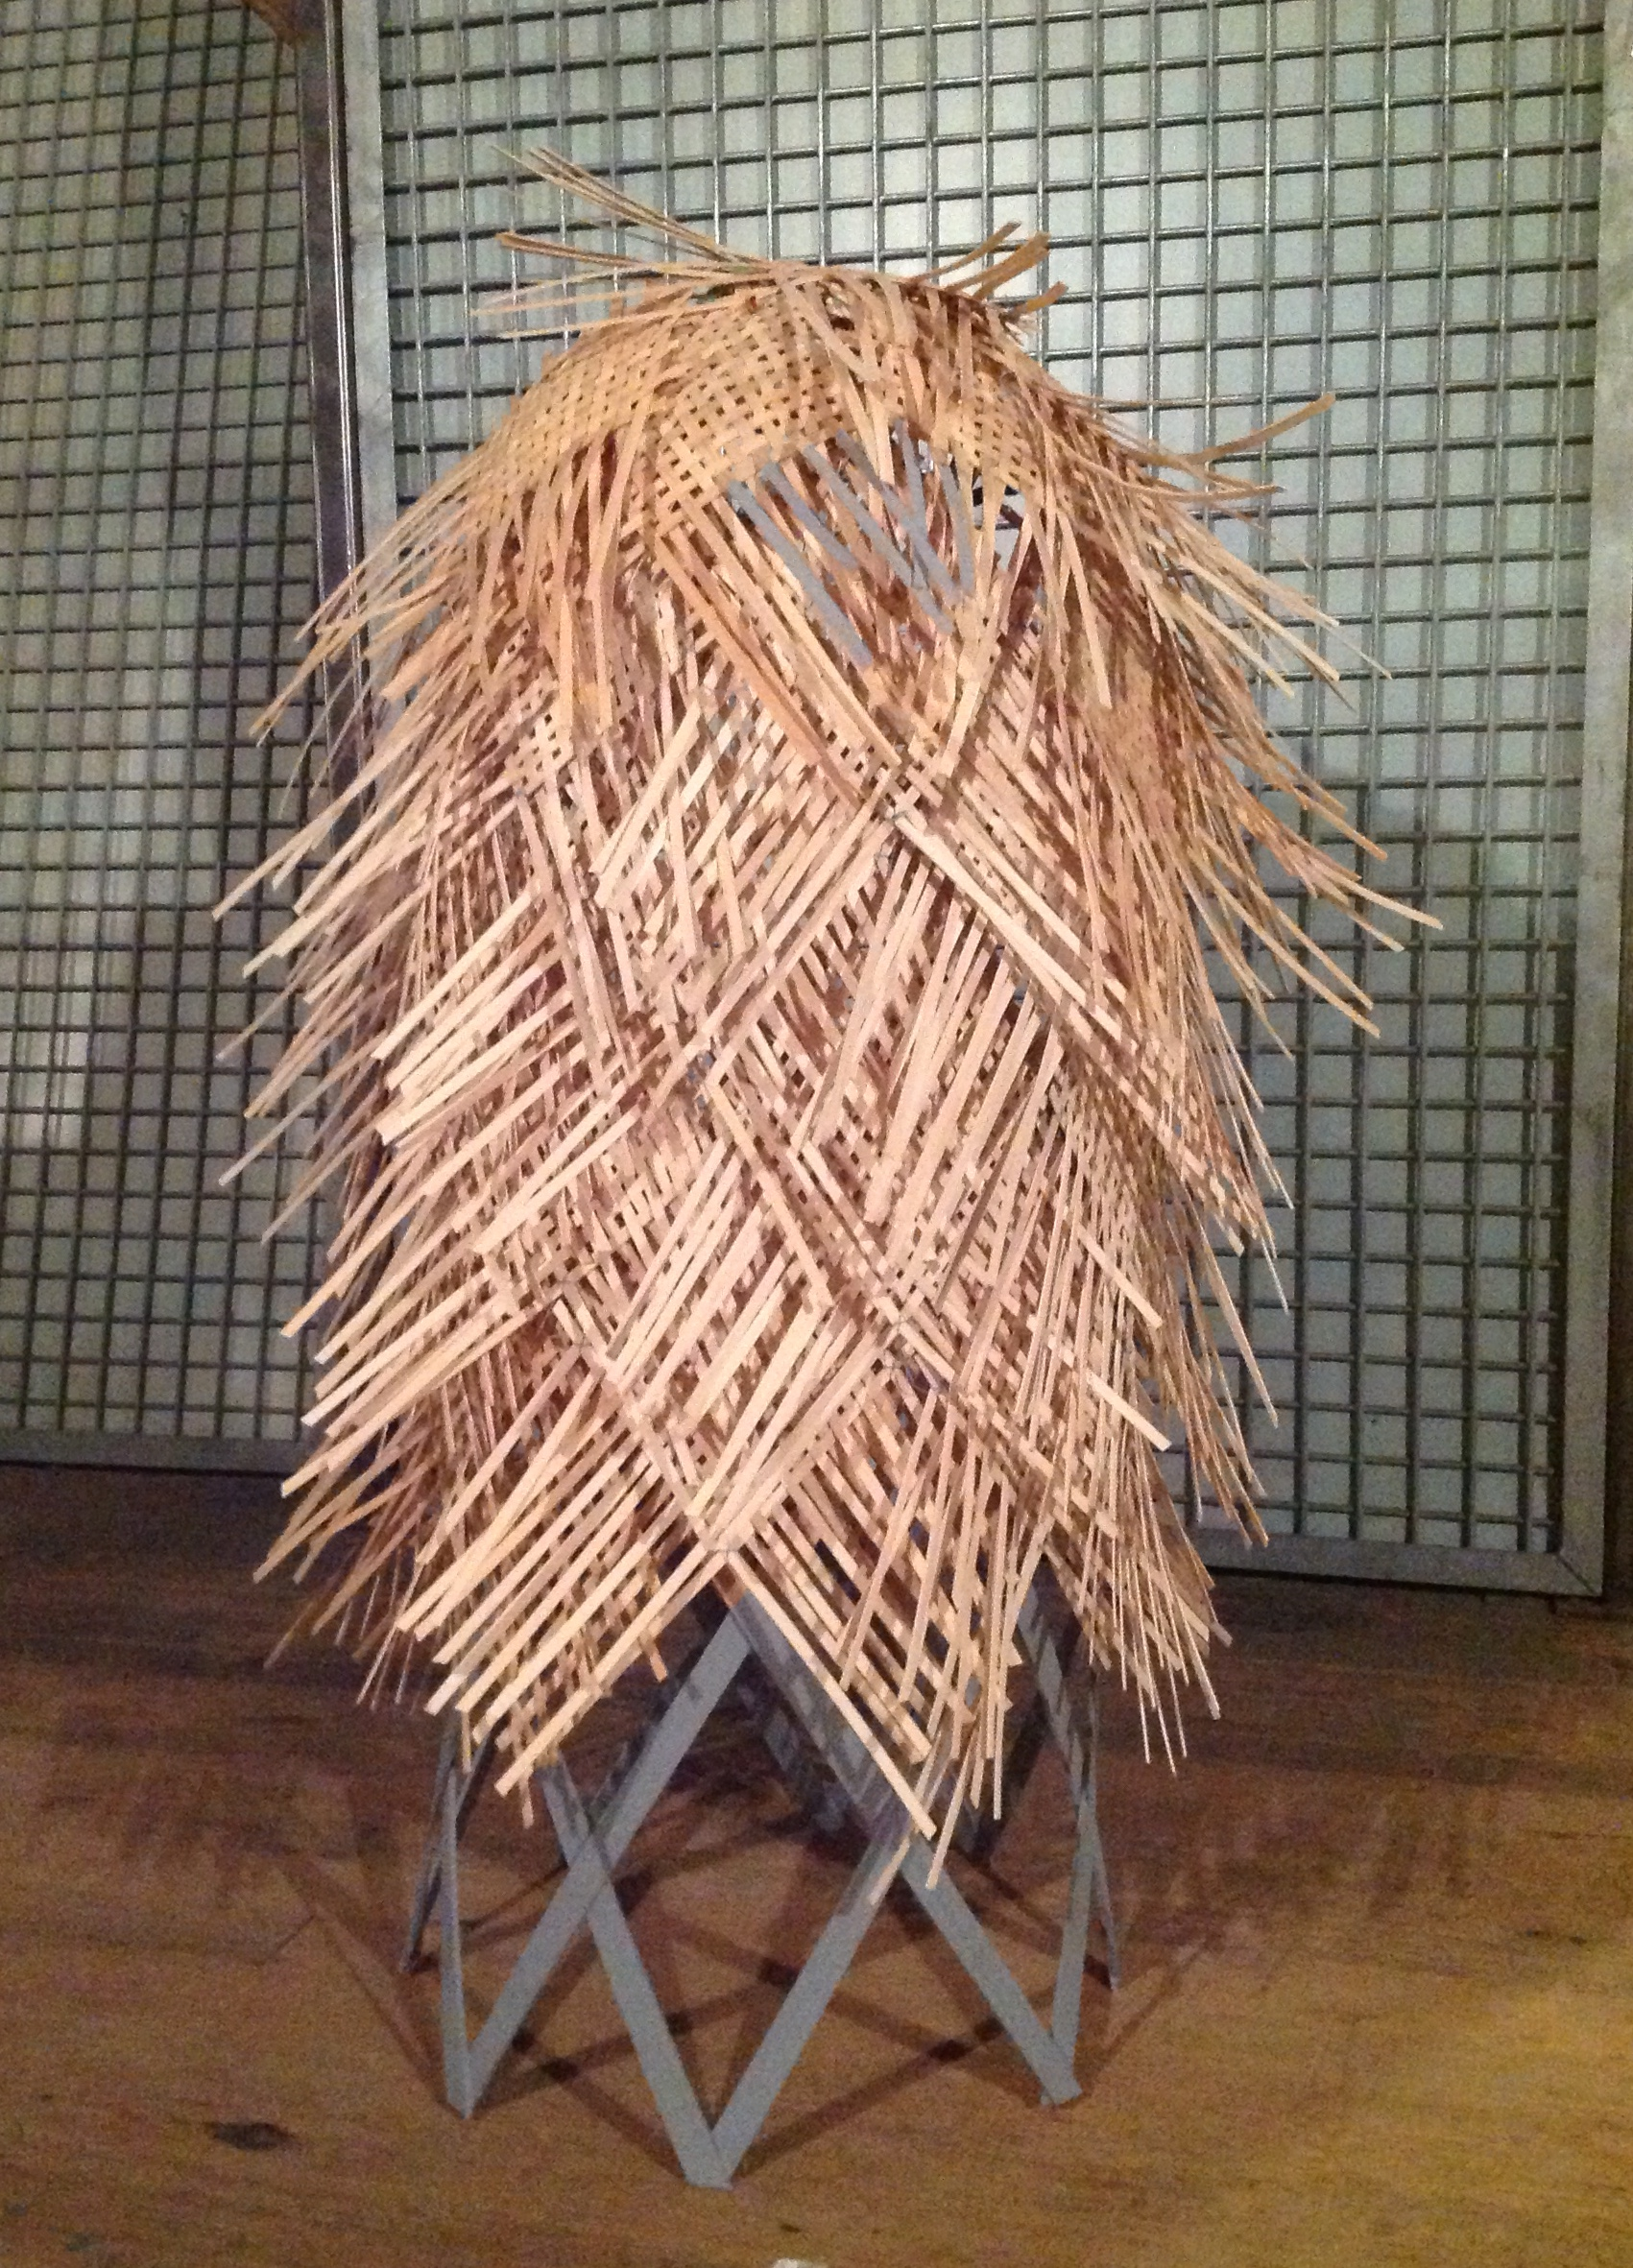 """1/2 scale model of """"basket"""" inspired by the Fibonacci Sequence found in a pine cone. 3 +feet tall. Full scale version will be approximately 6 feet tall!"""